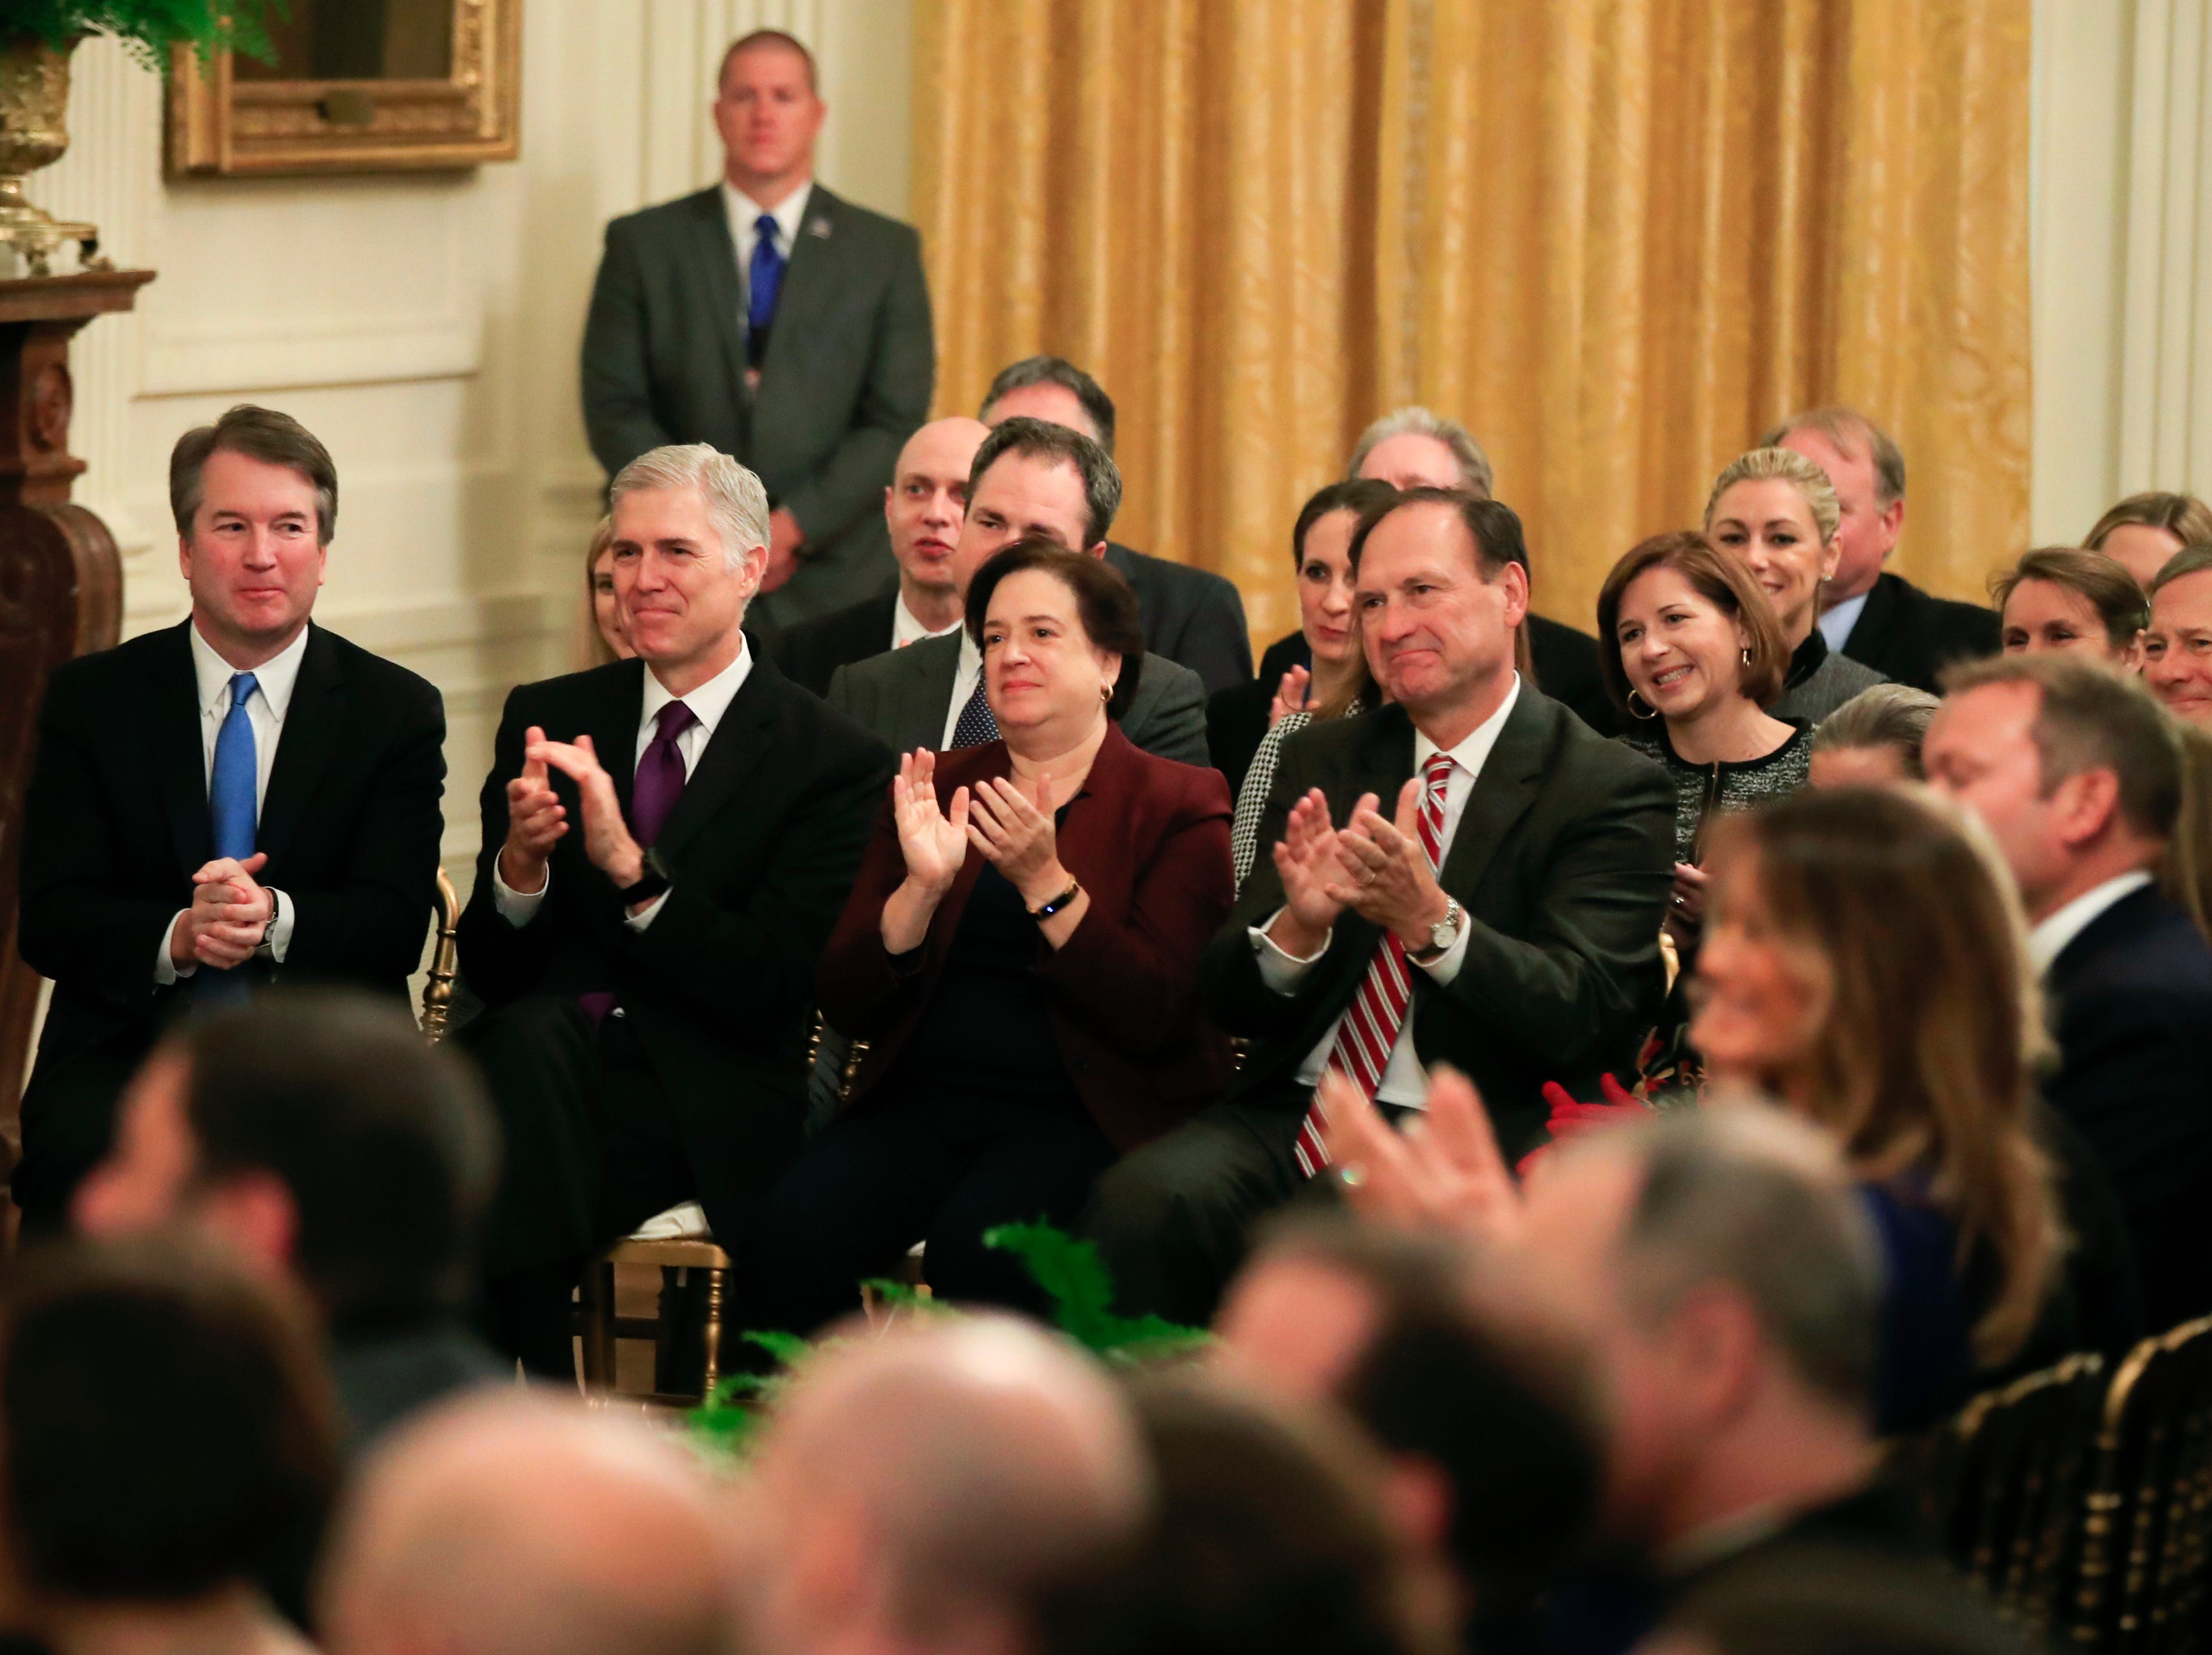 U.S. Supreme Court Justices, left to right, Brett Kavanaugh, Neil Gorsuch, Elena Kagan, Samuel Alito, Ruth Bader Ginsburg and Chief Justice John Roberts applaud as the late Justice Antonin Scalia is posthumously awarded by President Donald Trump the Presidential Medal of Freedom in the East Room of the White House, in Washington, D.C., on Friday, Nov. 16, 2018.